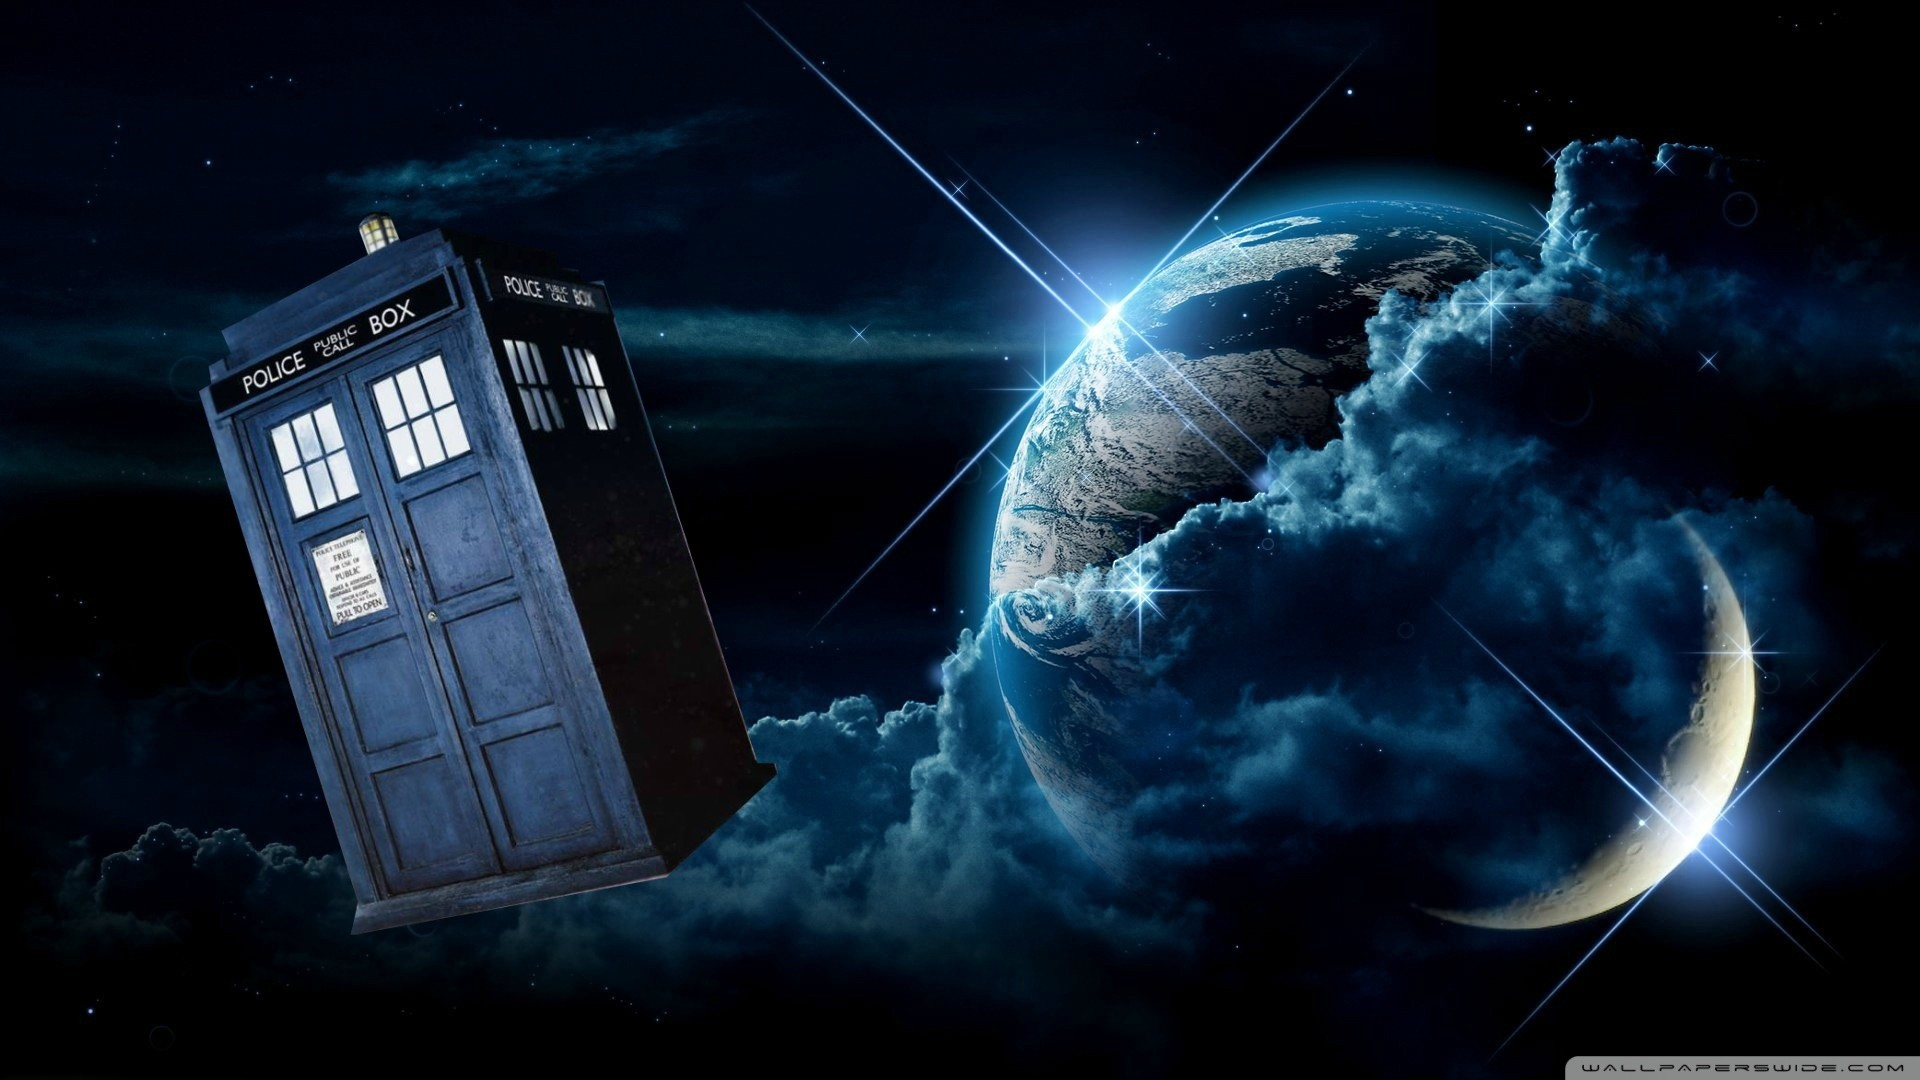 Doctor Wallpaper Posted By Sarah Walker